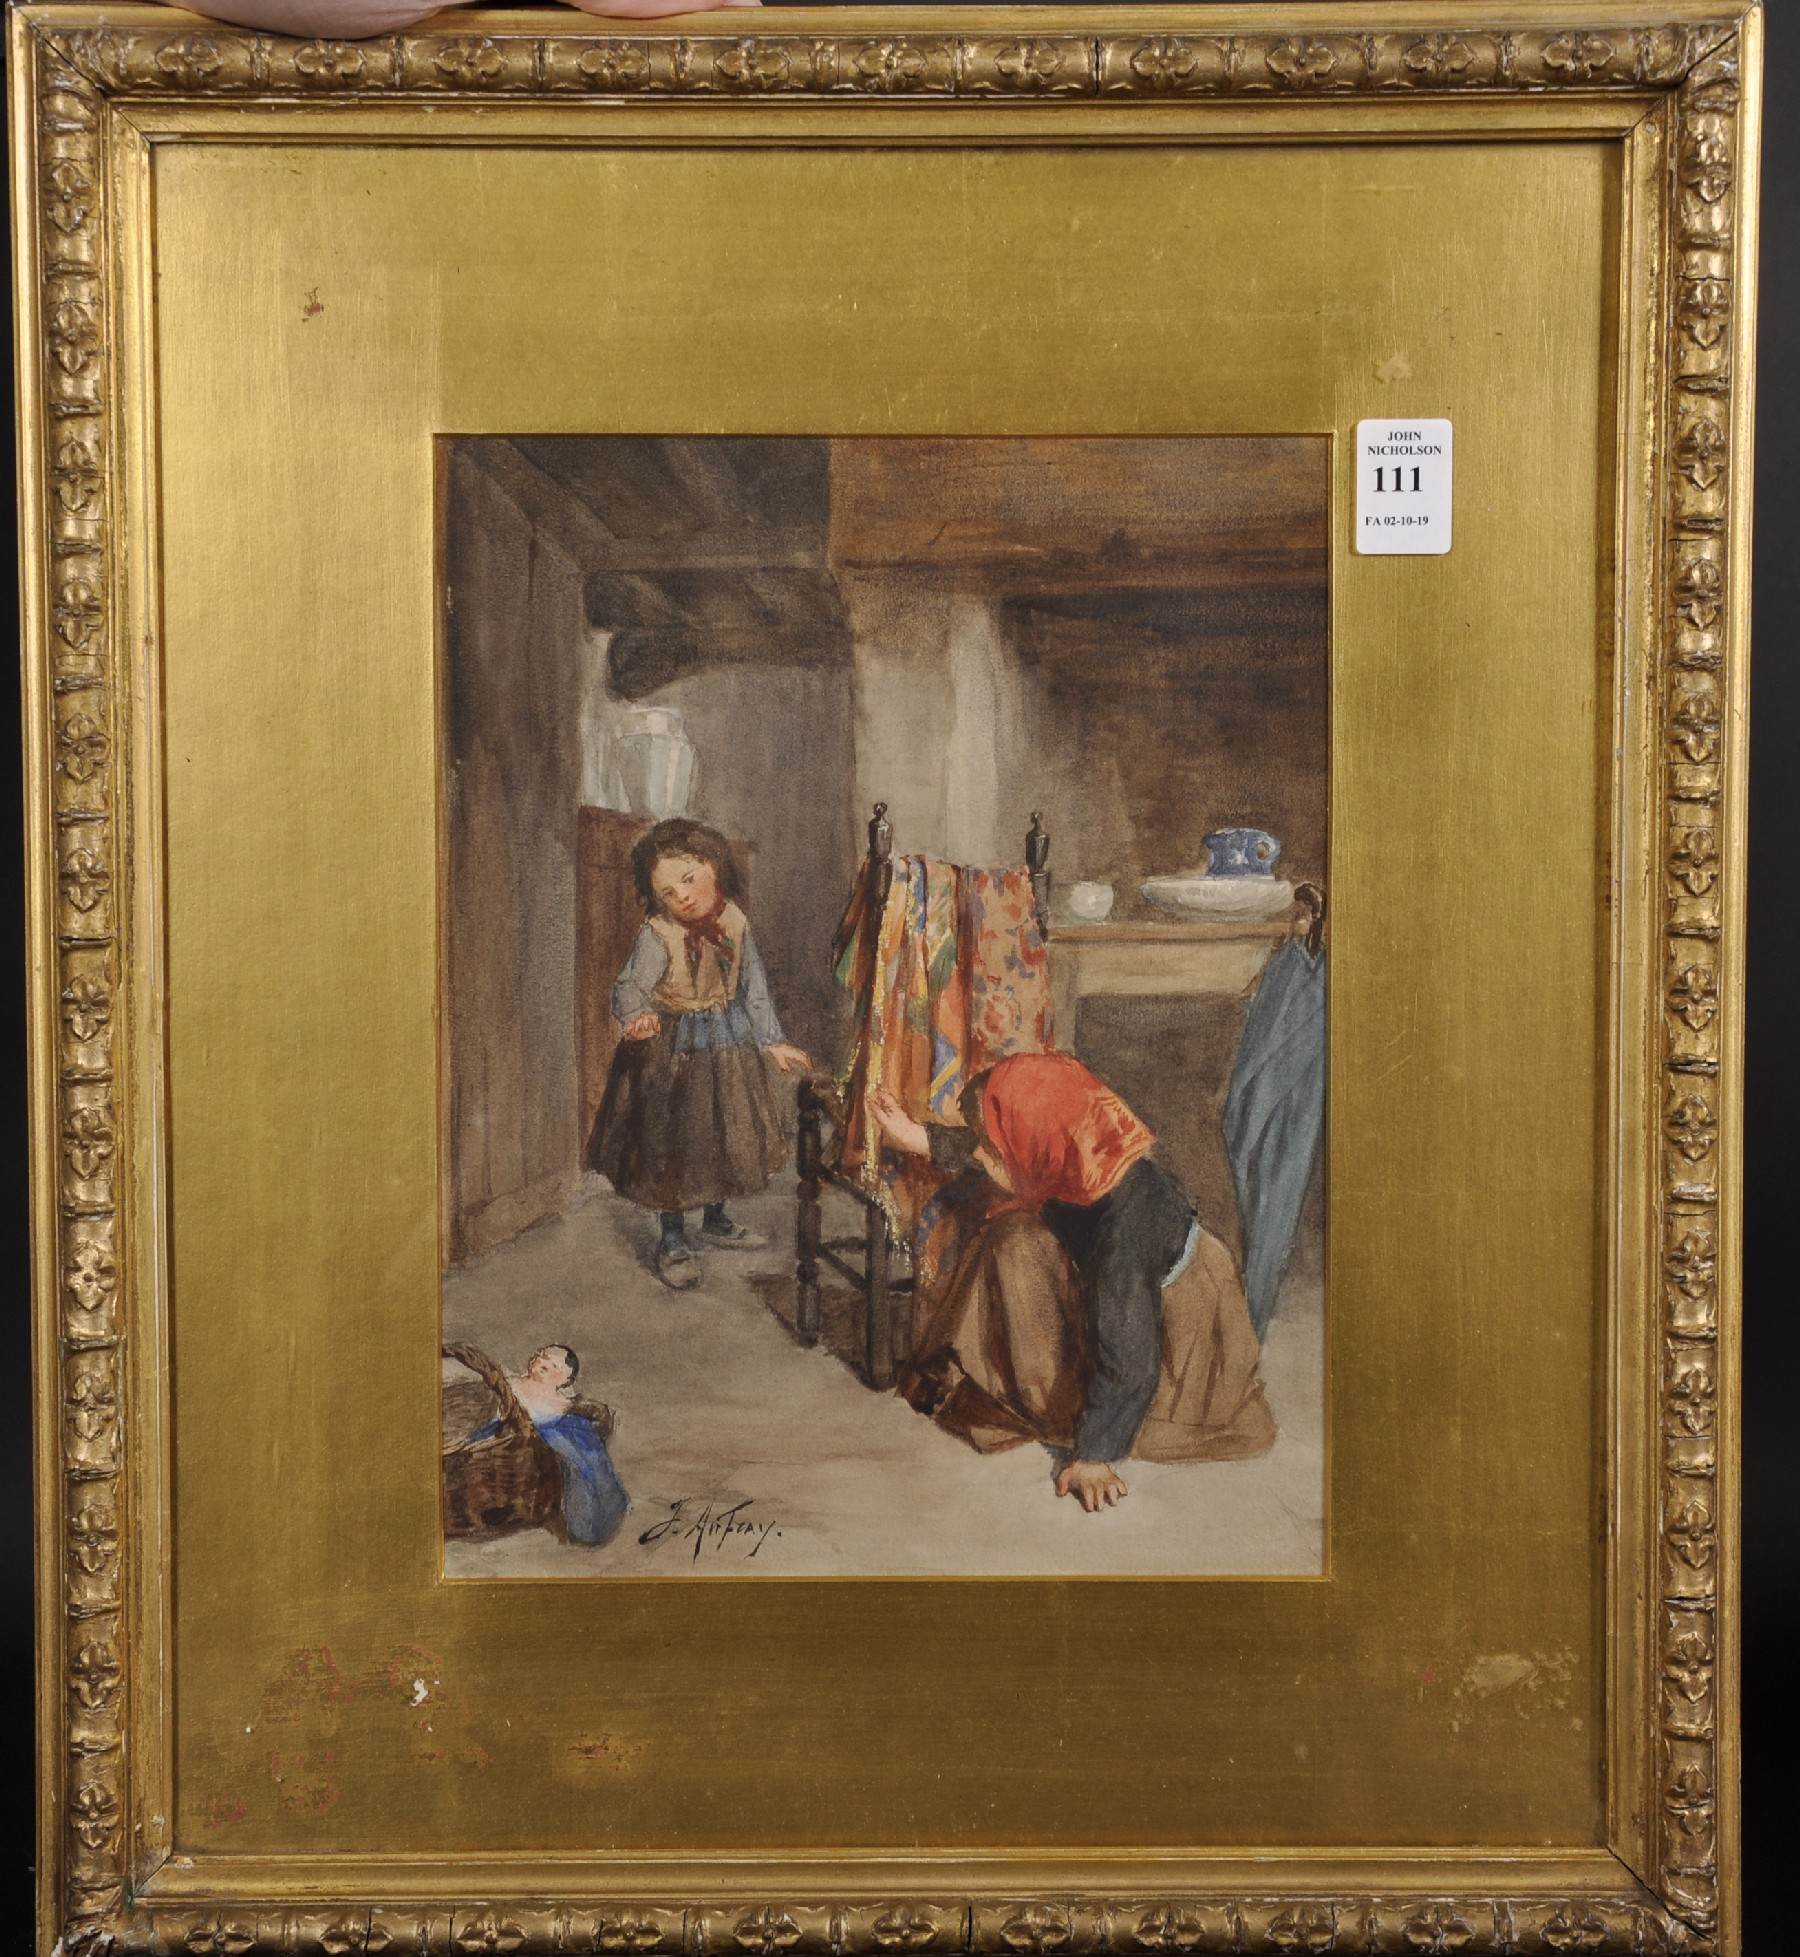 Joseph Athanase Aufray (1836-c.1885) French. Two Children Playing Hide and Seek, Watercolour, - Image 2 of 4